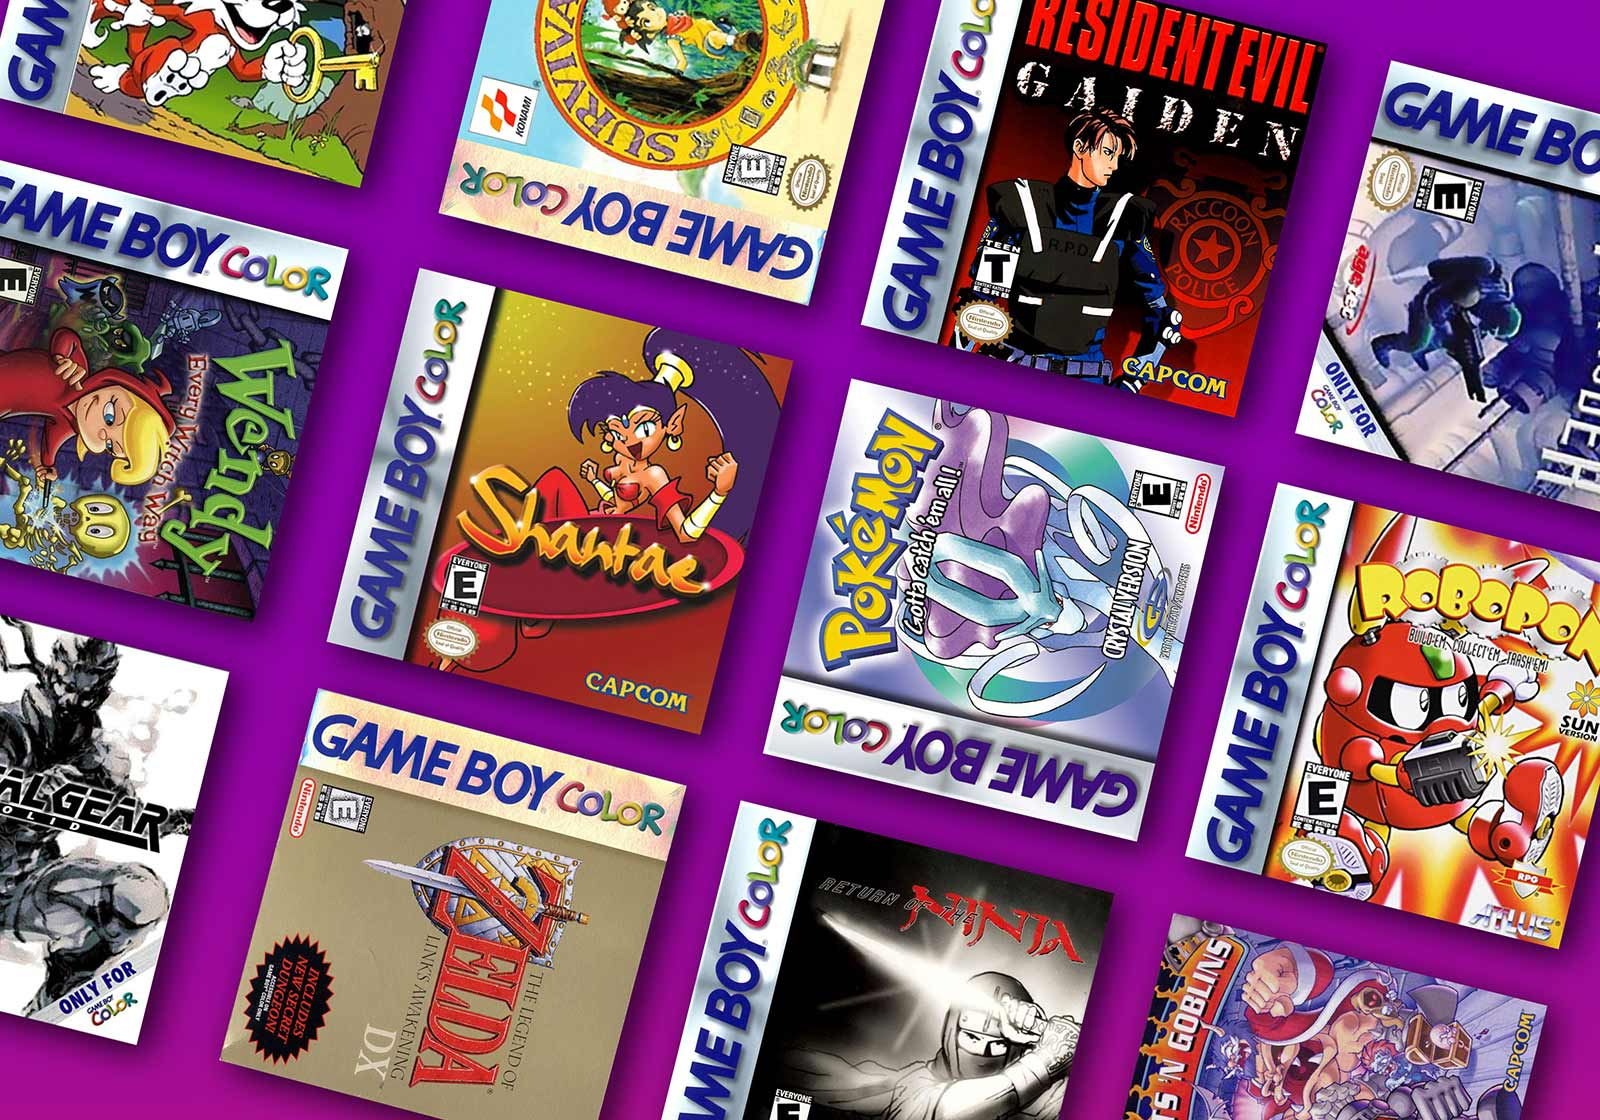 The Rarest and Most Valuable Gameboy Color Games